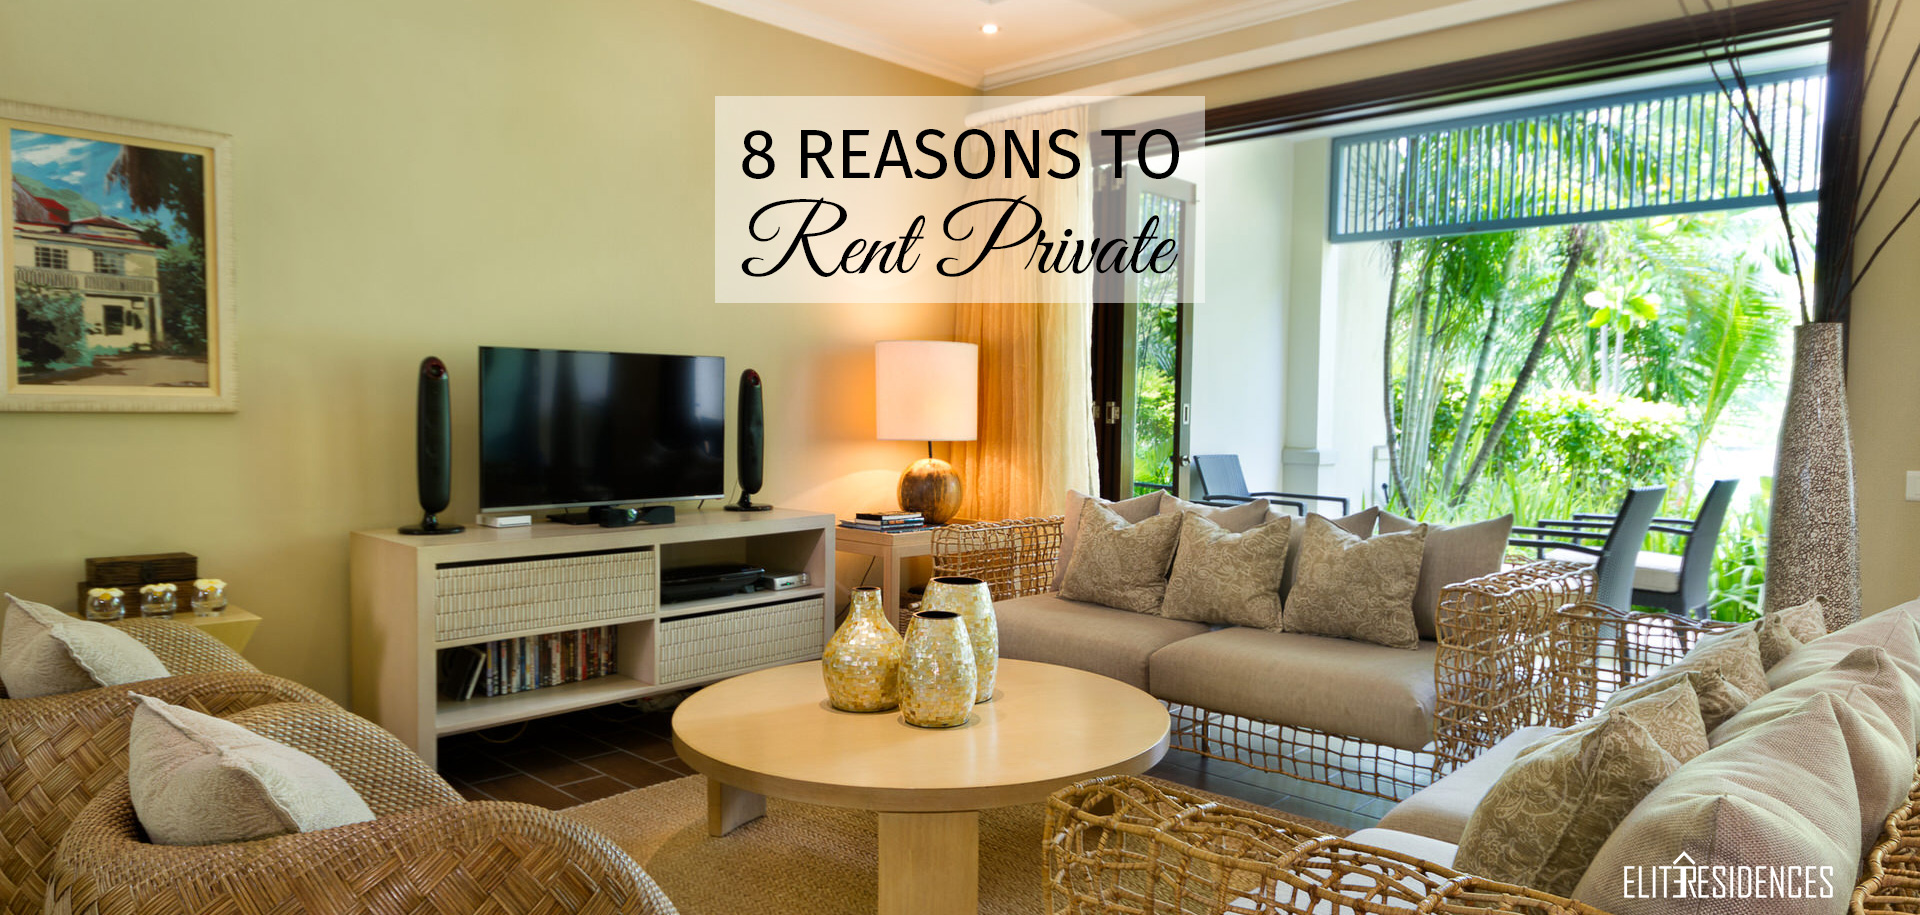 8 Reasons to Rent Private